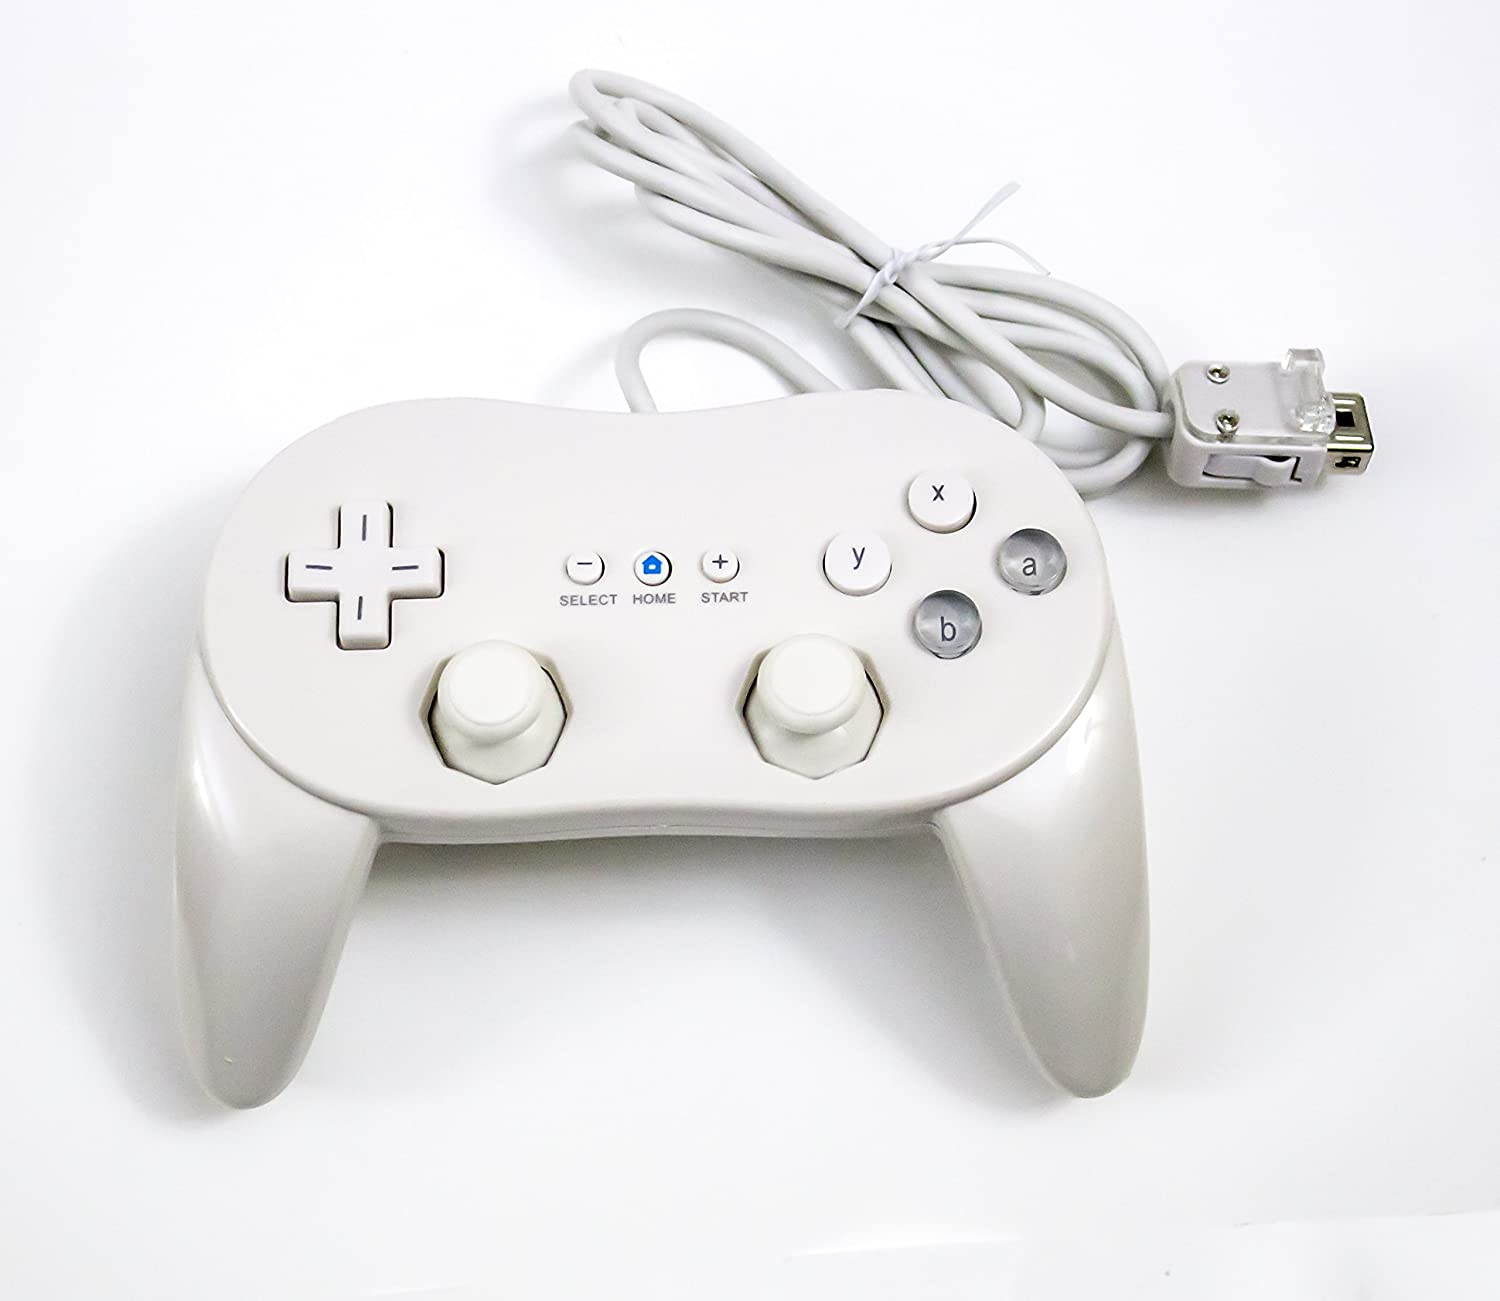 Old Skool Wii Classic Pro Fort Worth Mall free WiiU Controller White and for